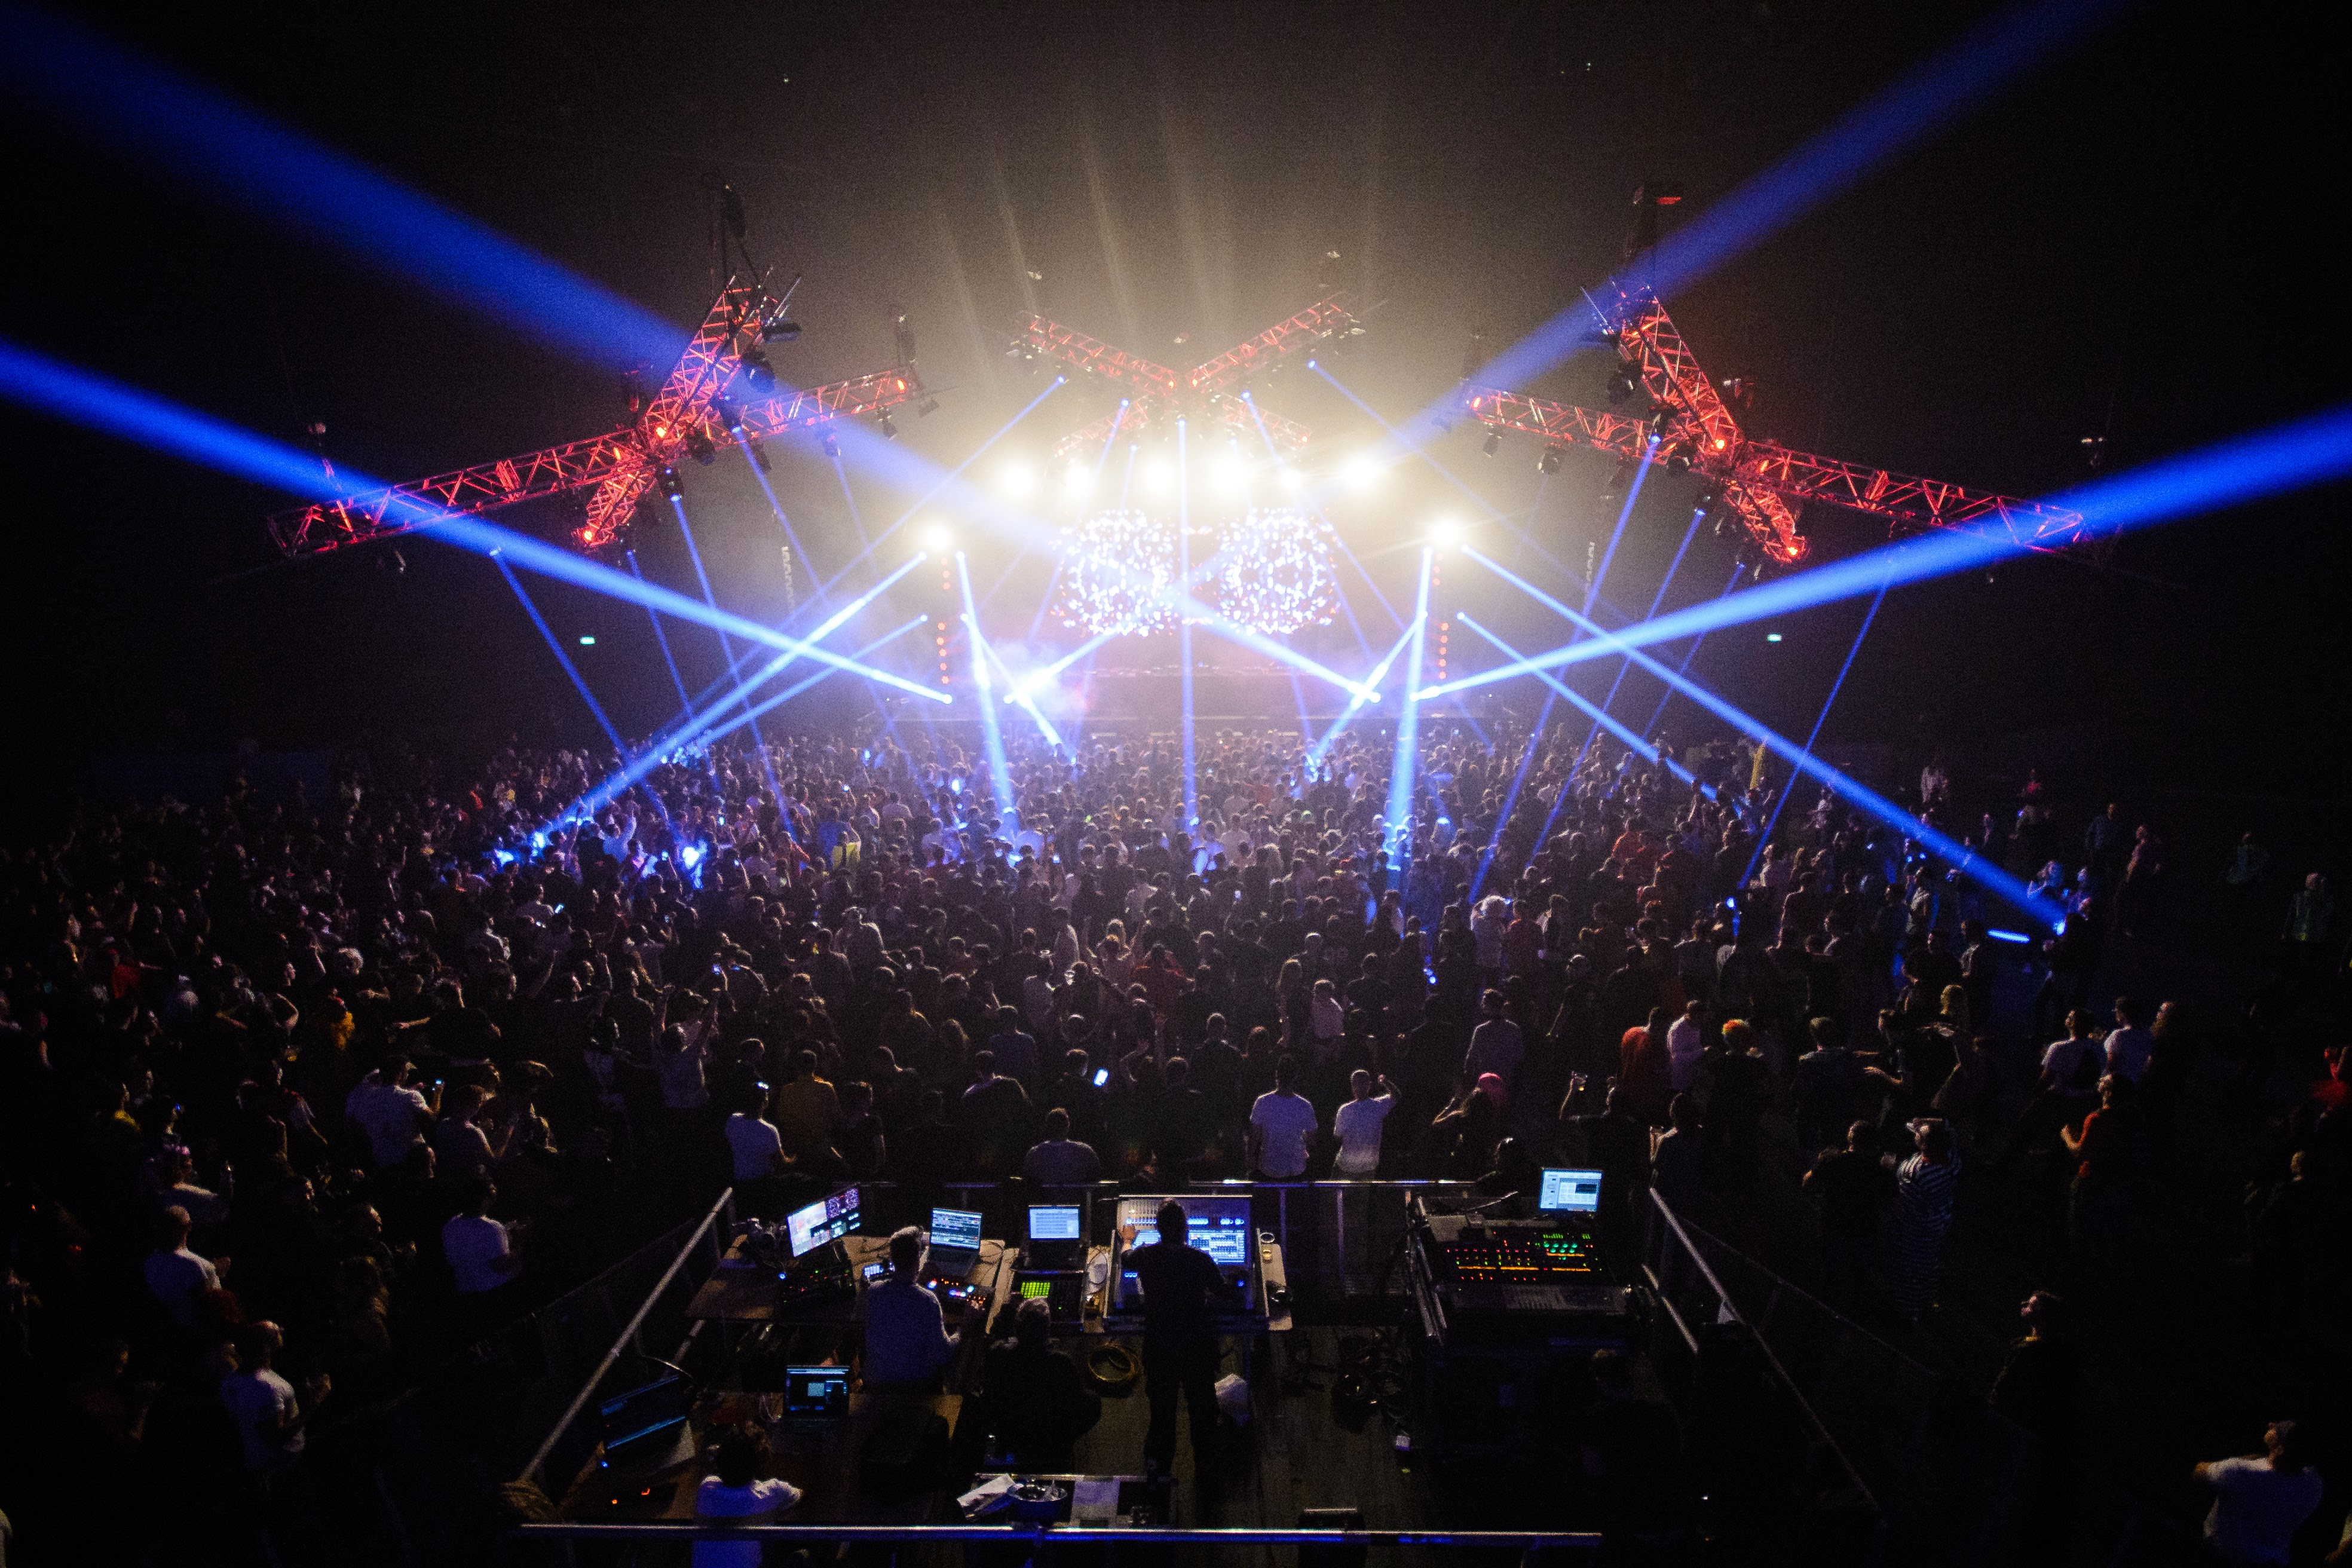 winterparty-at-3arena-dublin-30-10-2016-by-sean-smyth-27-of-53